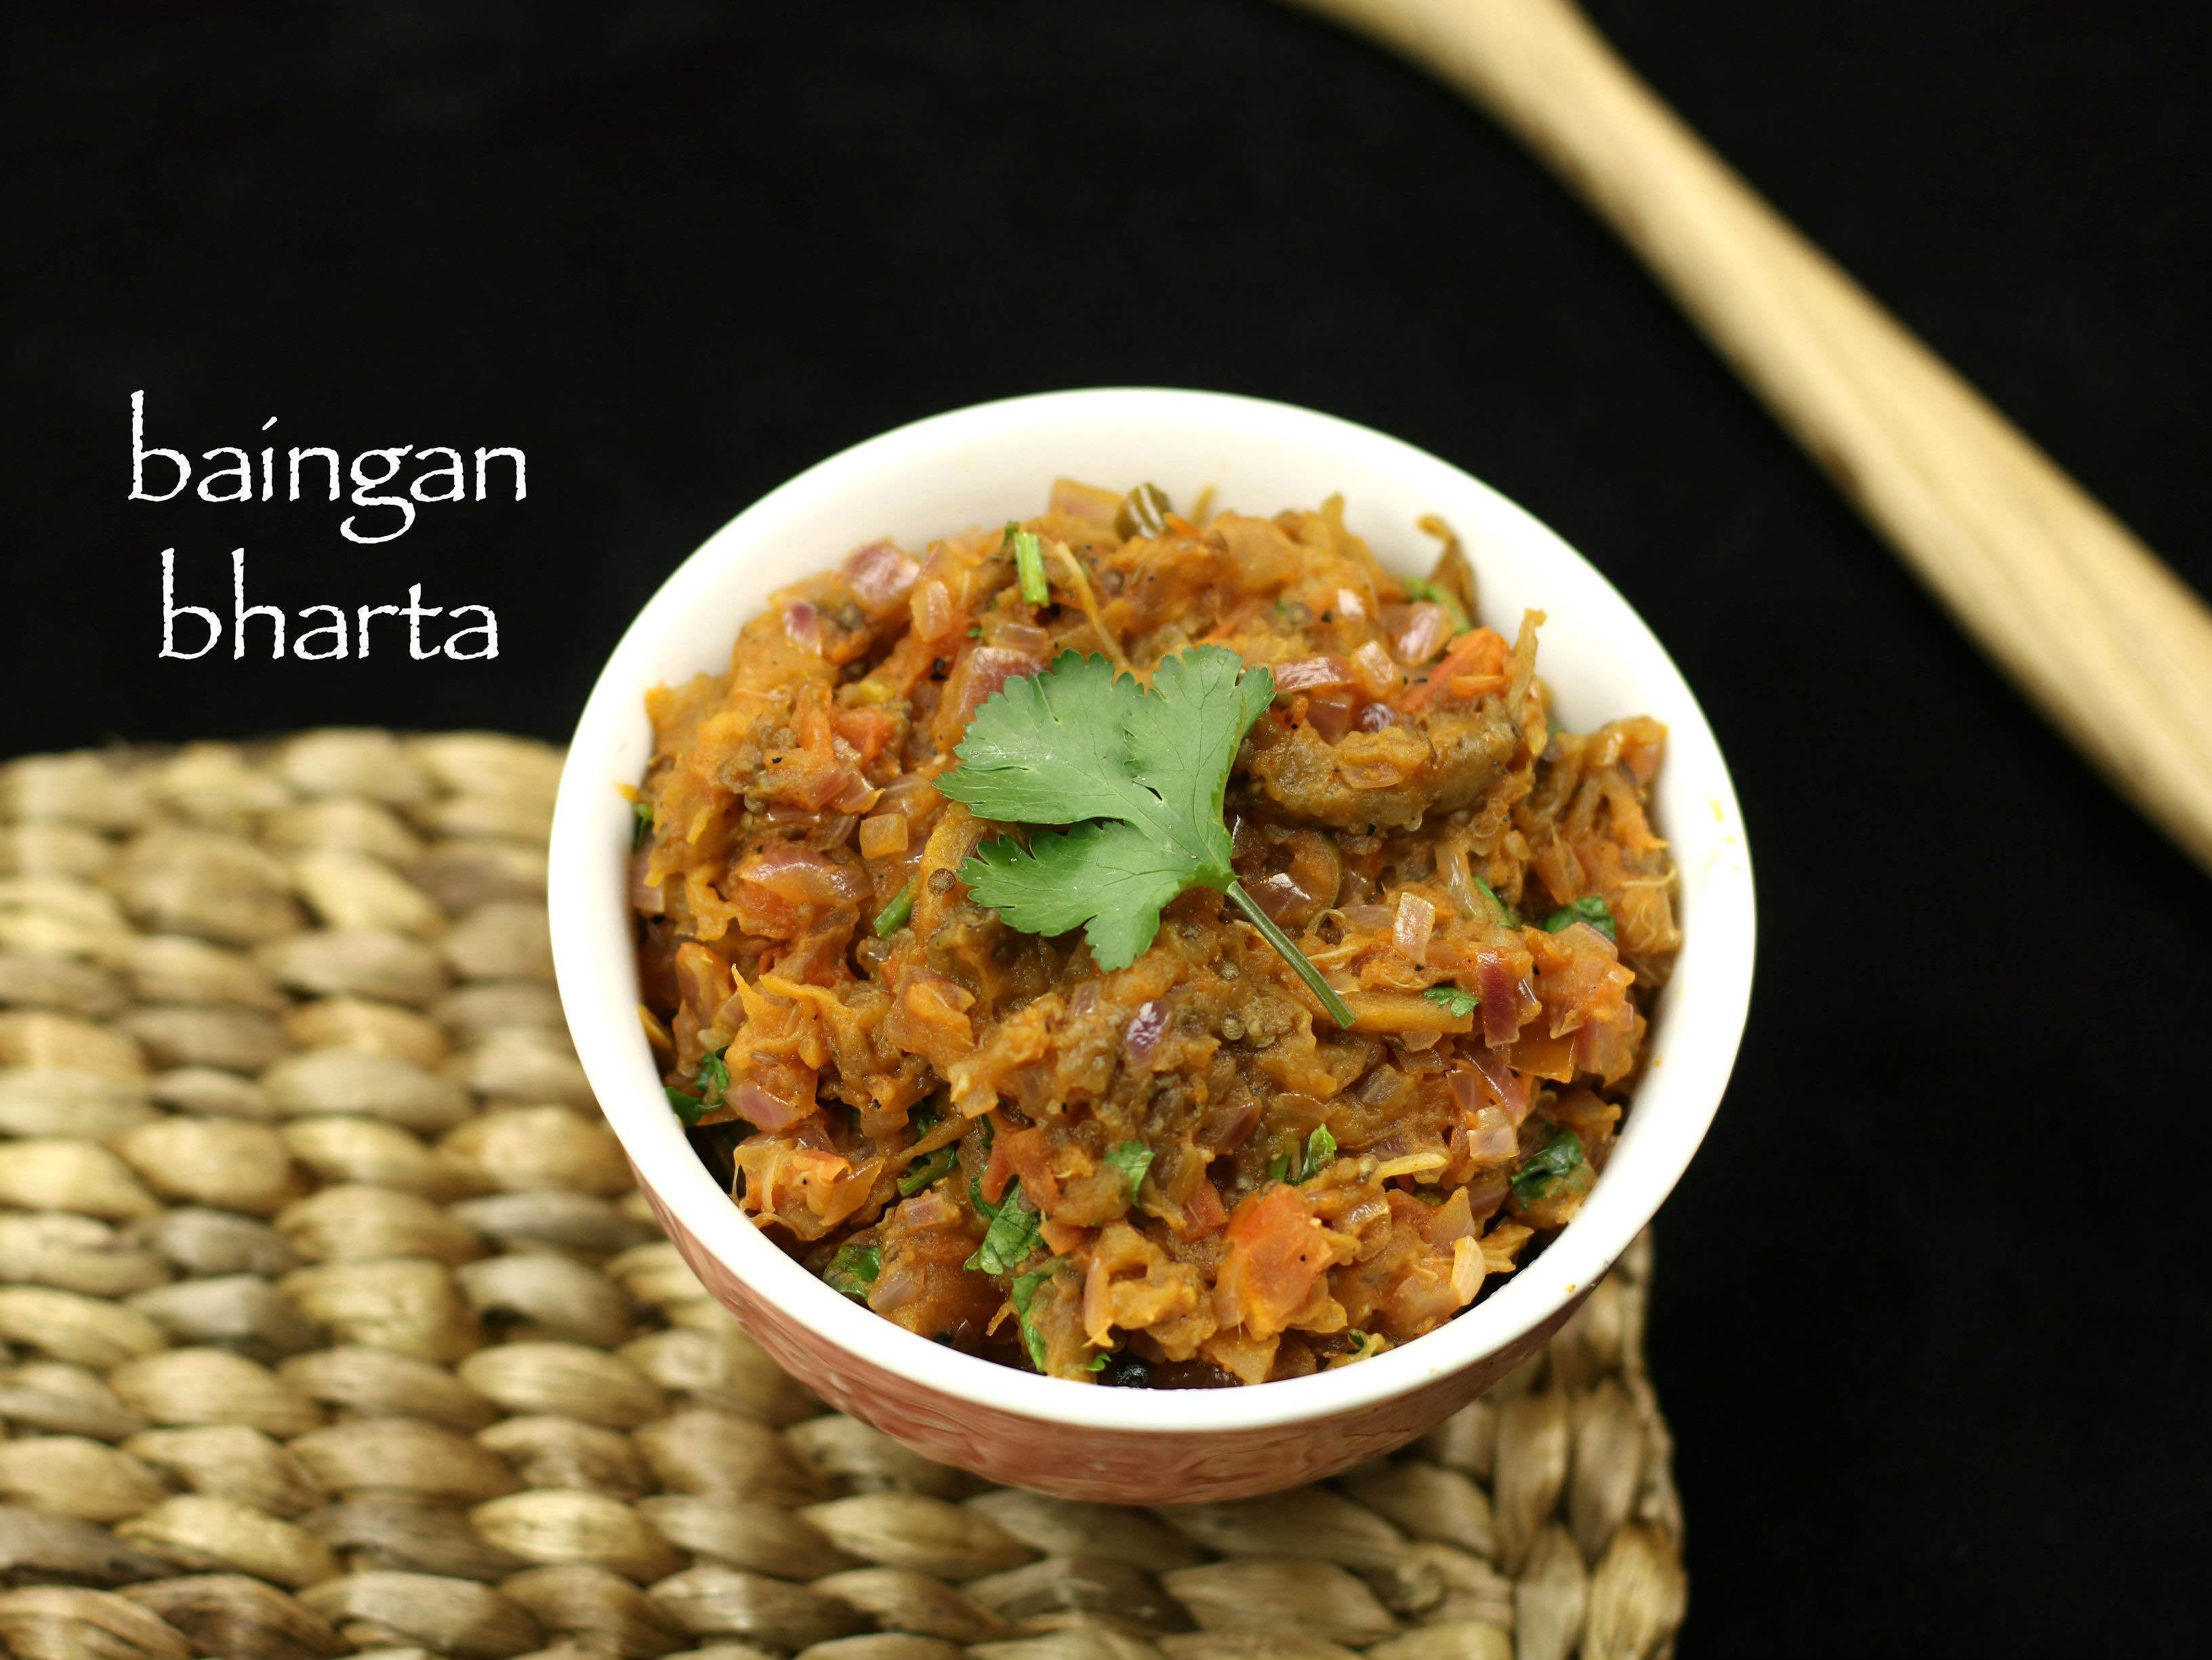 baingan bharta recipe | roasted eggplant curry recipe